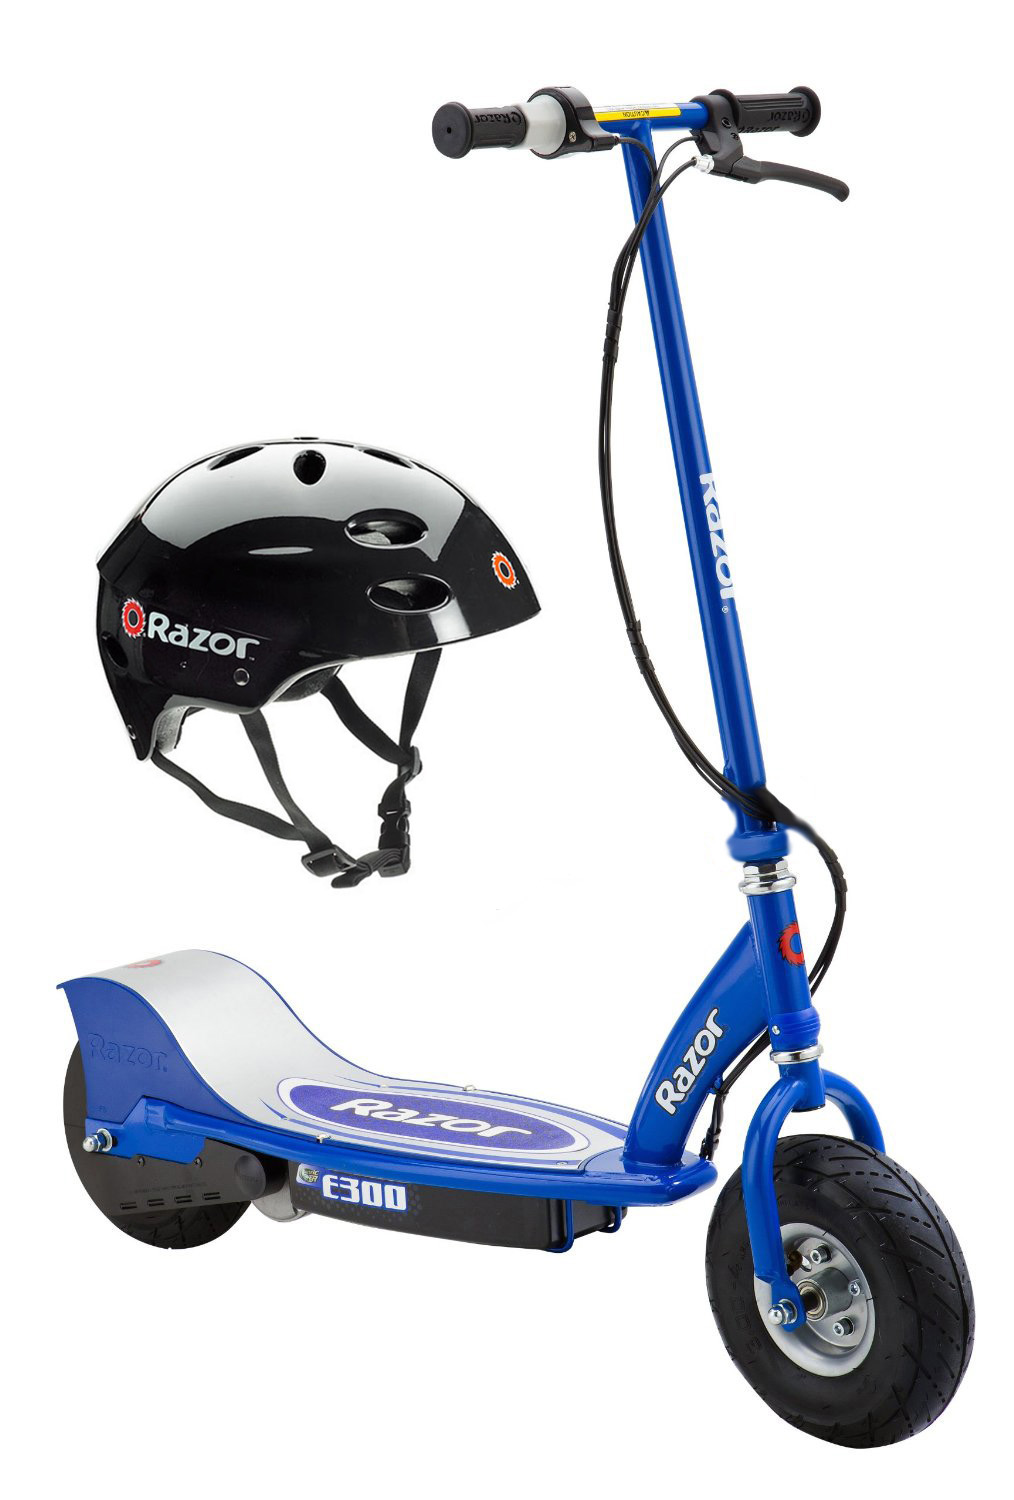 Razor E300 Electric Motorized Kids Ride On Scooter and Black Youth Safety Helmet by Razor